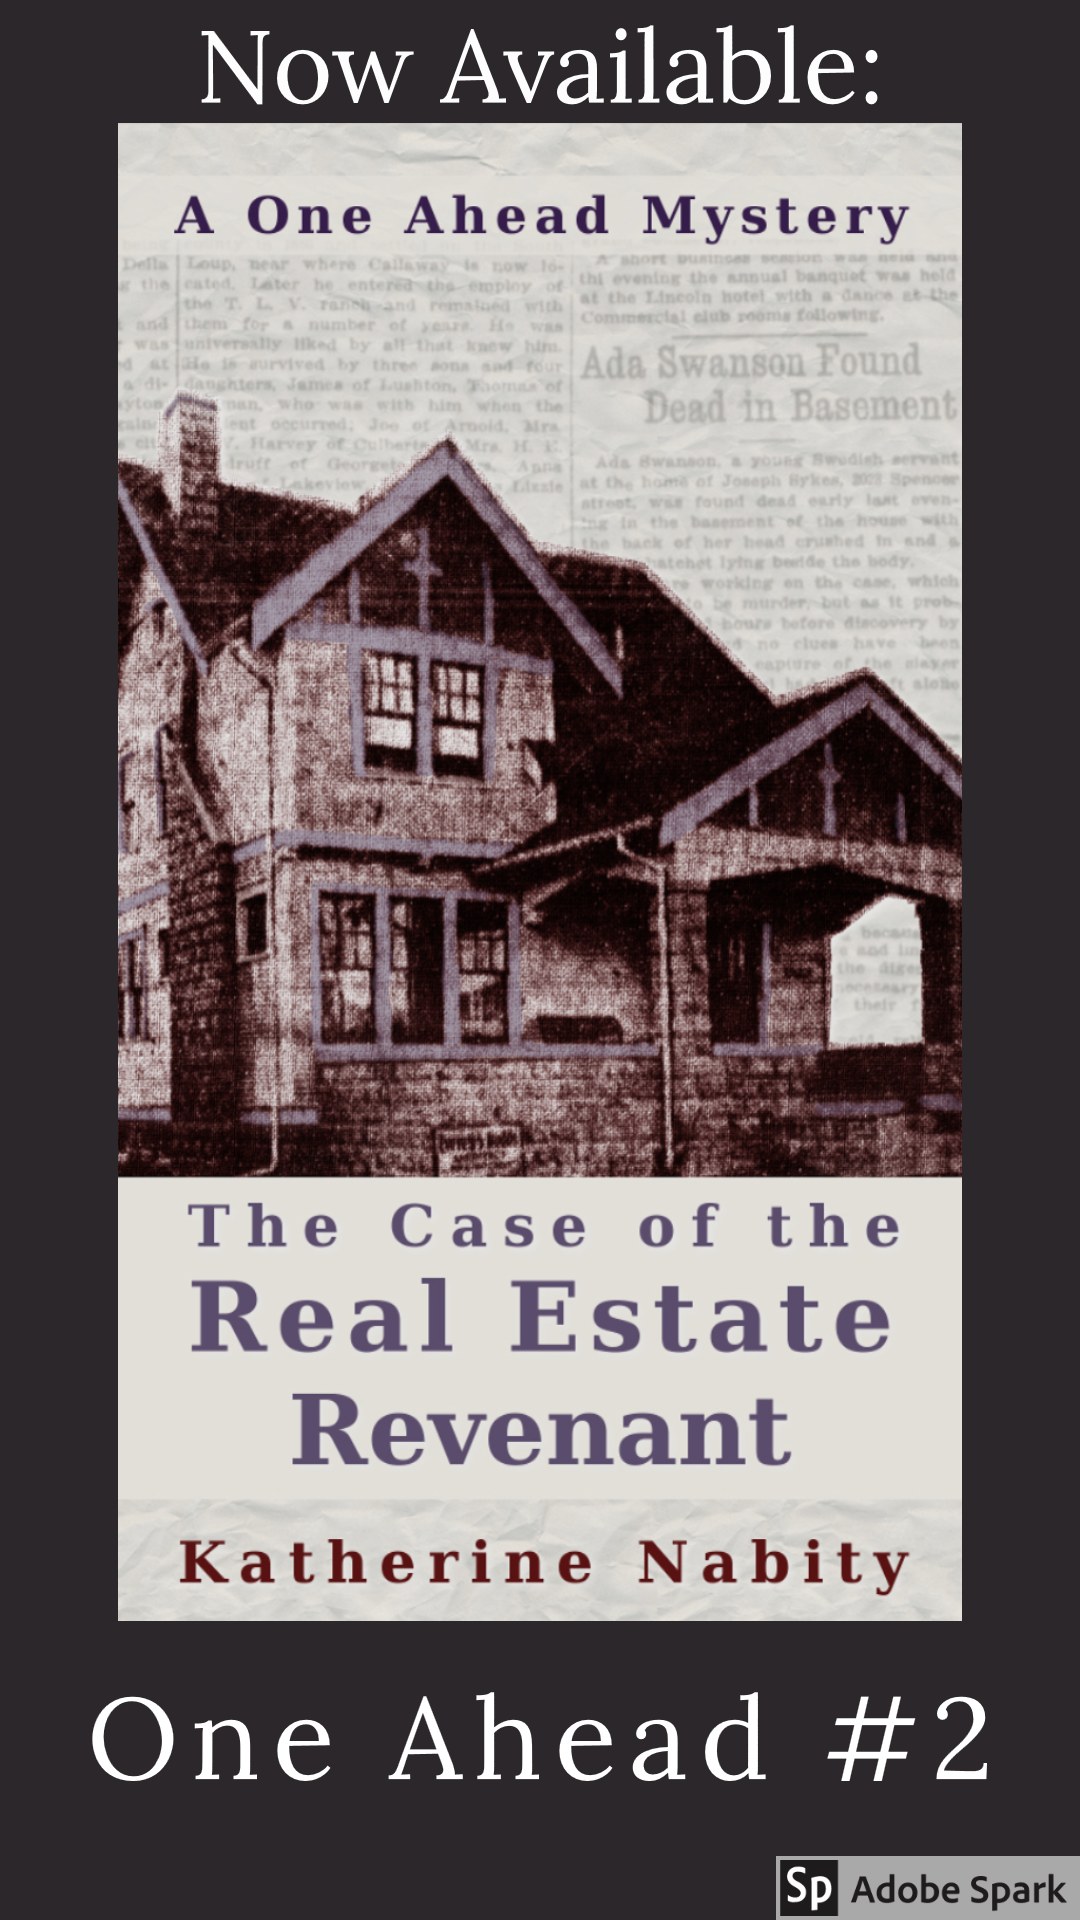 Real Estate Revenant now available